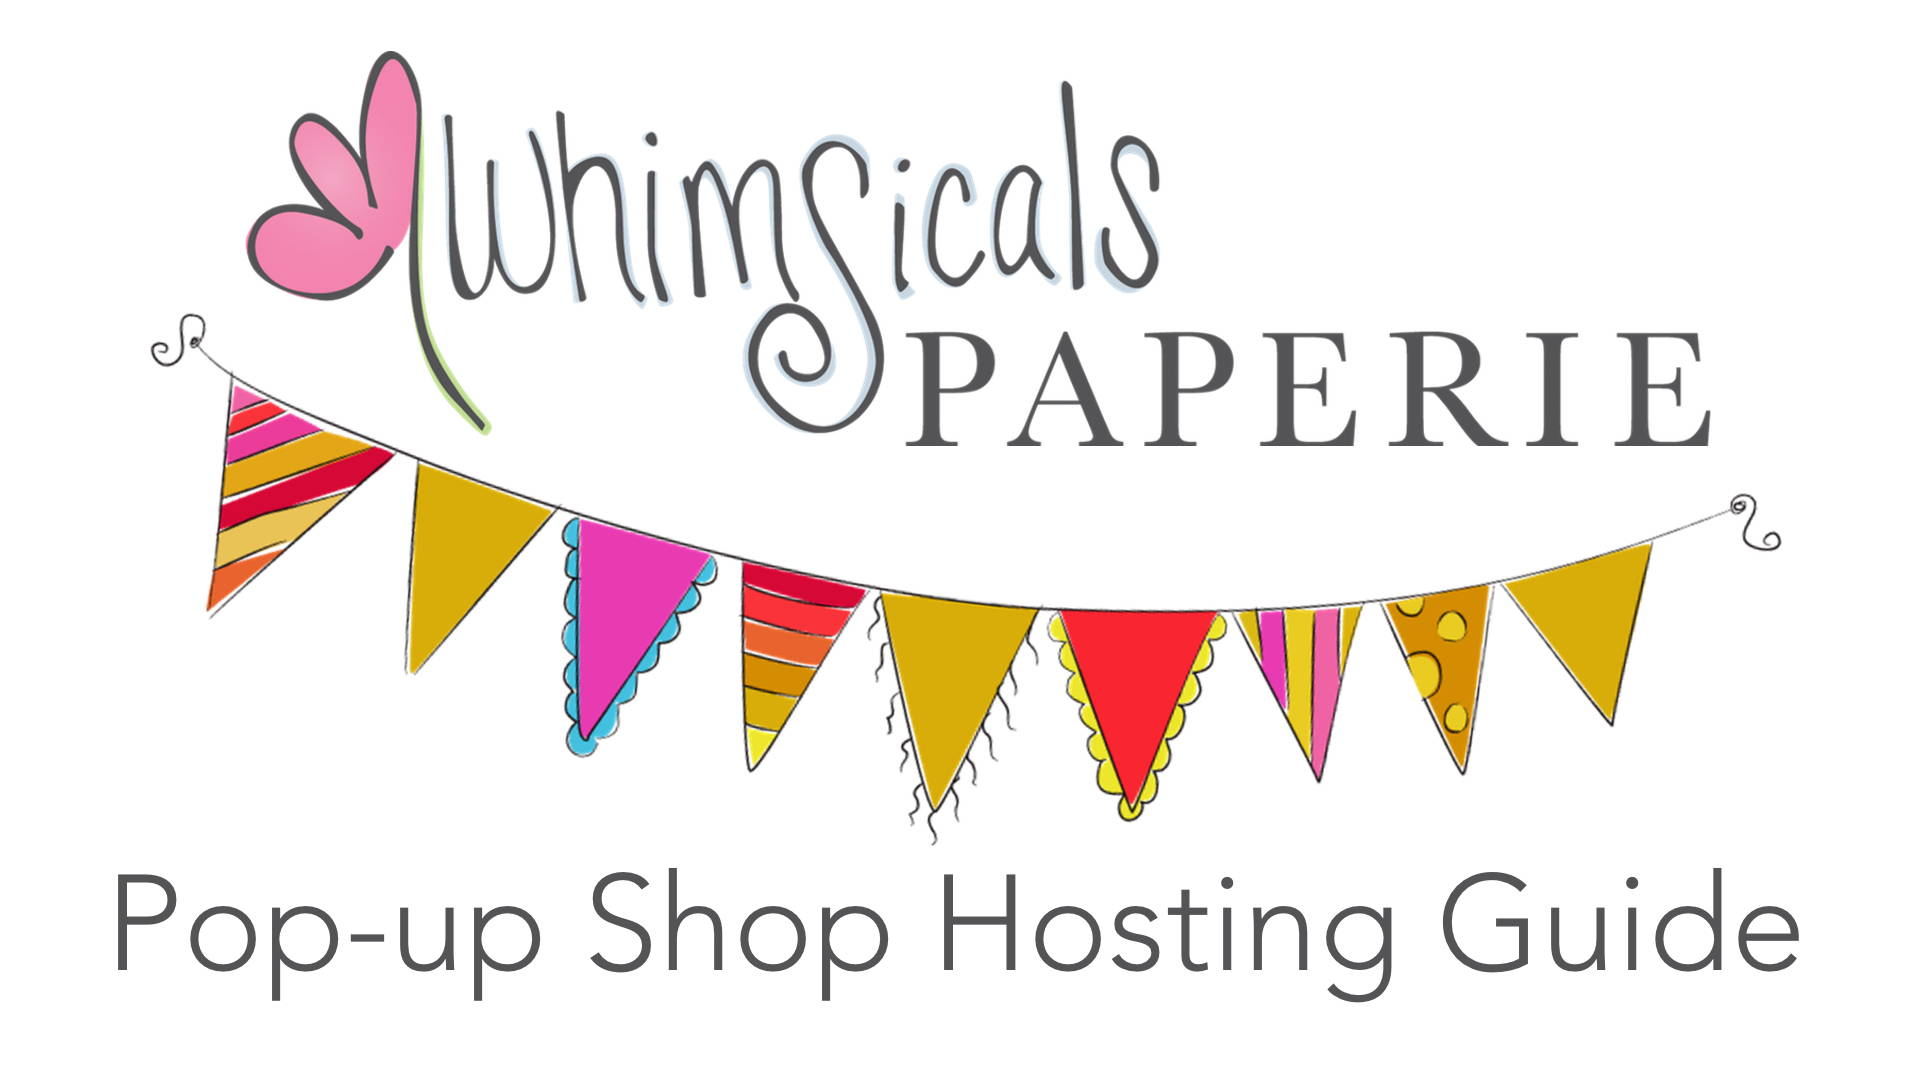 Whimsicals Paperie Hosting Guide